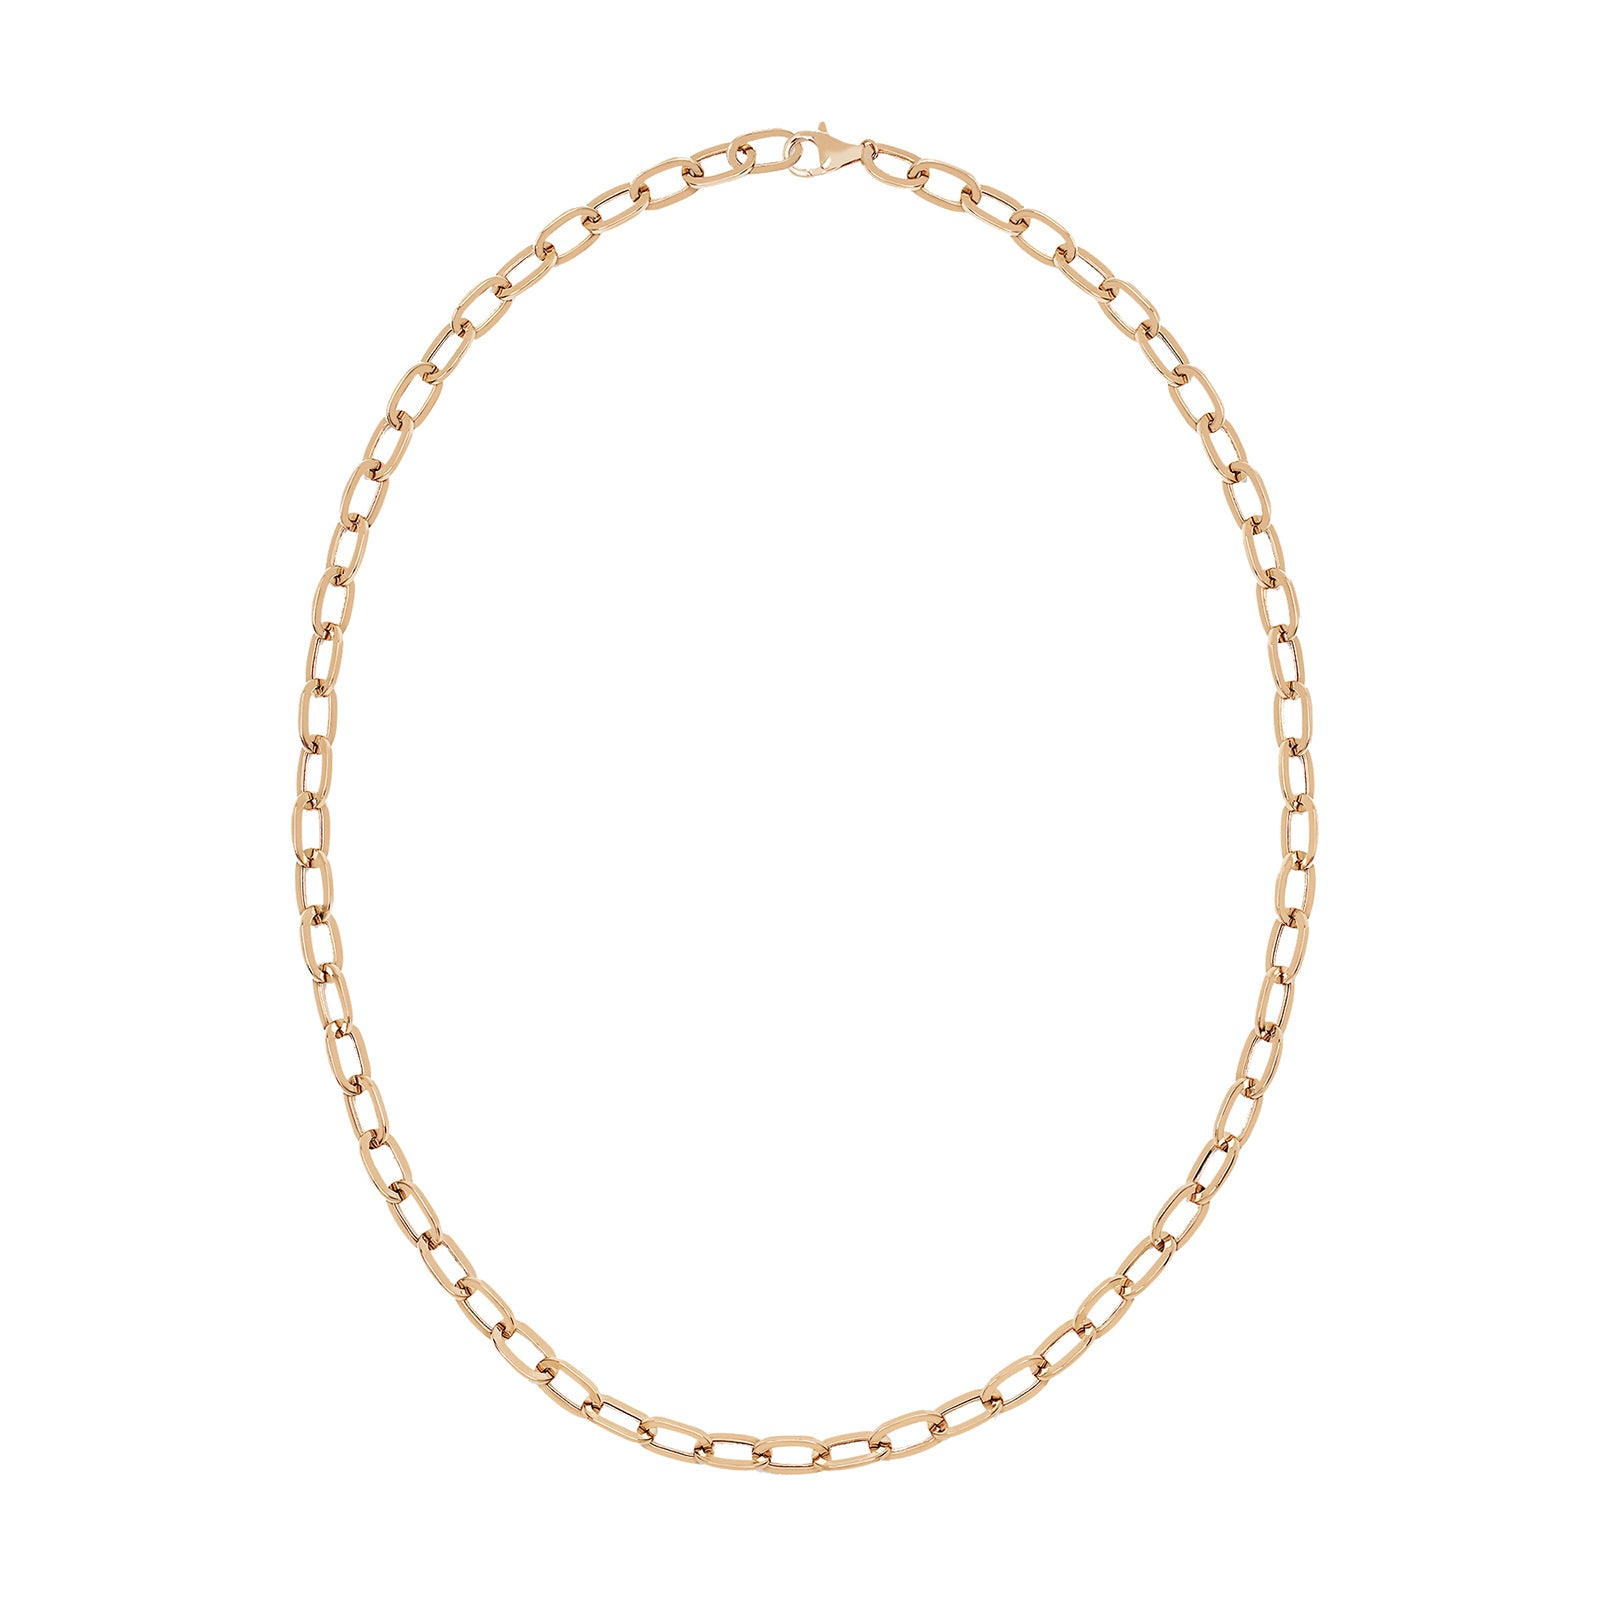 EF Collection Jumbo Link Necklace - Rose Gold - Necklaces - Broken English Jewelry